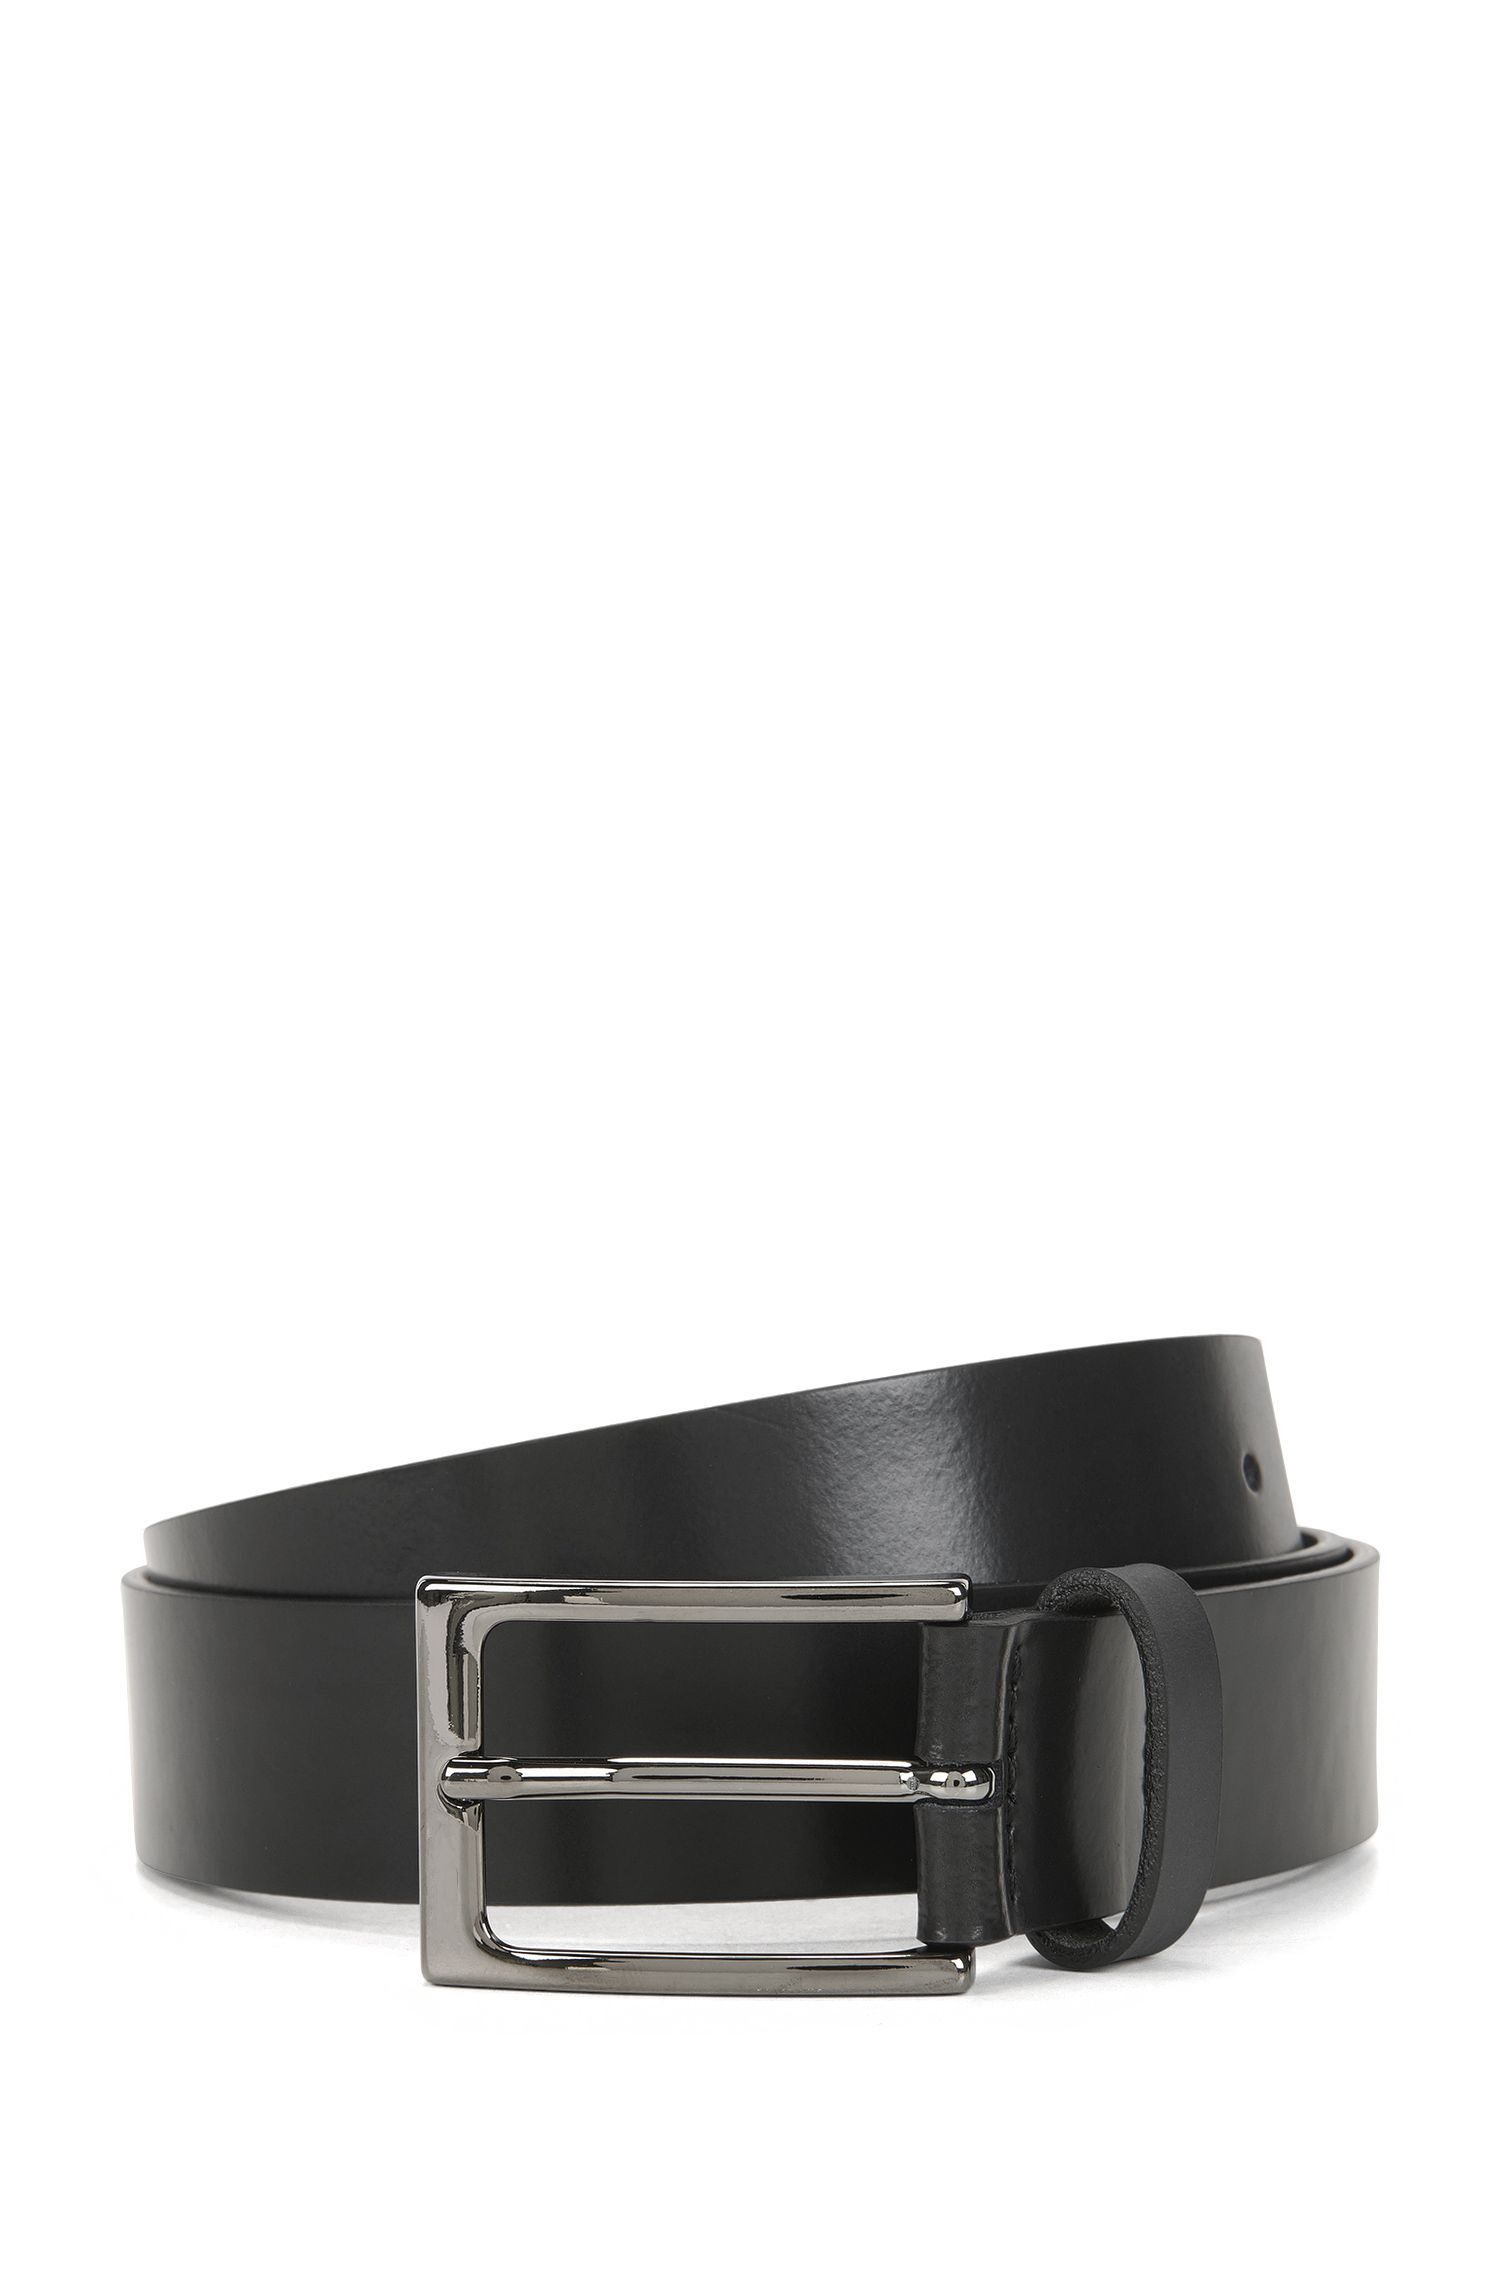 Matt leather belt with polished gunmetal pin buckle